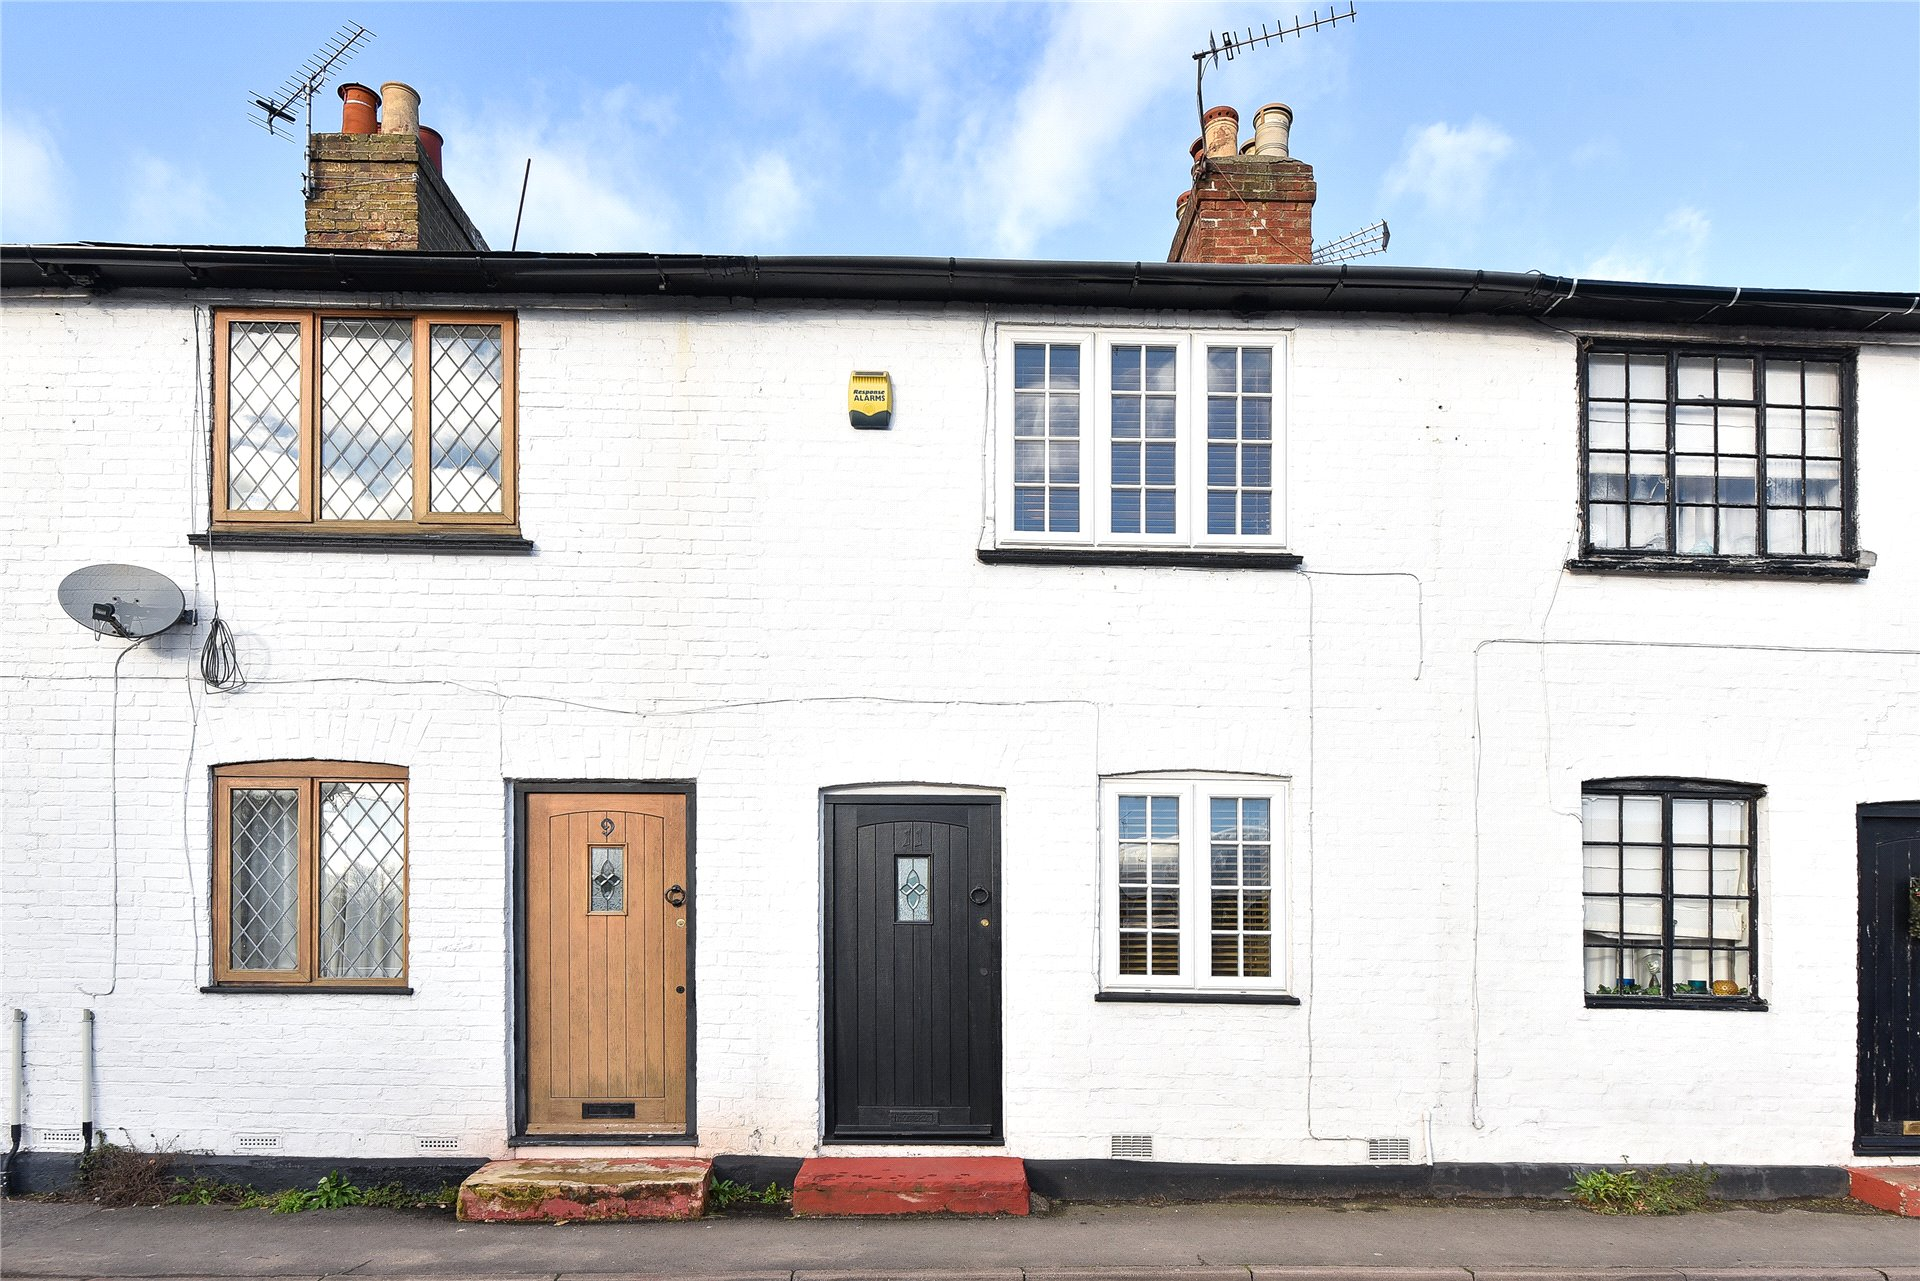 2 Bedrooms Terraced House for sale in Lincoln Hatch Lane, Burnham, Buckinghamshire, SL1